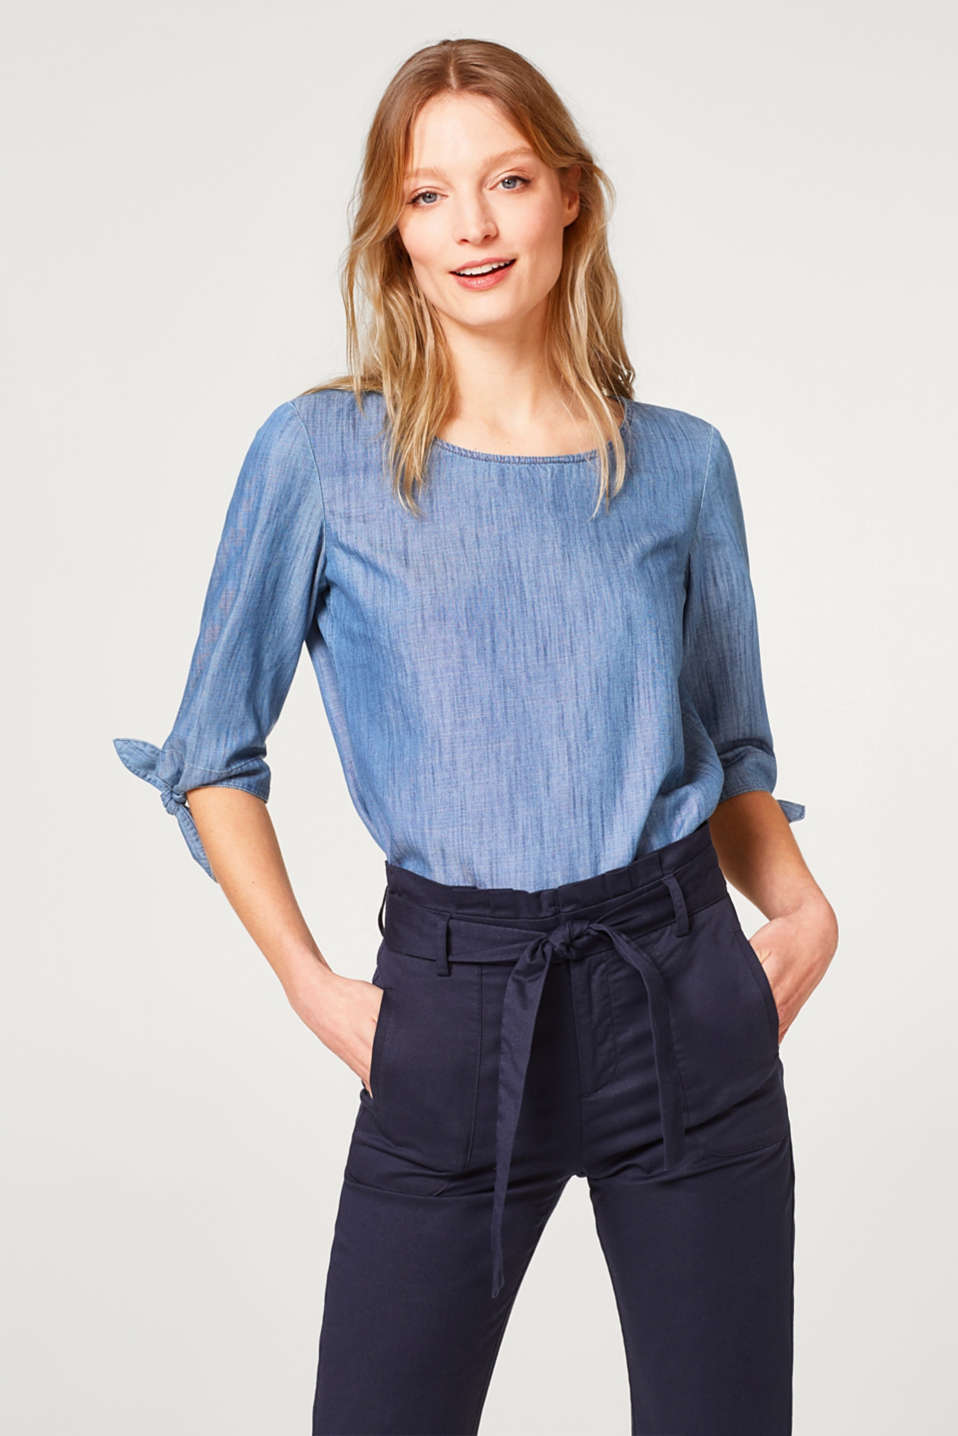 Esprit - Lightweight denim blouse with bow details